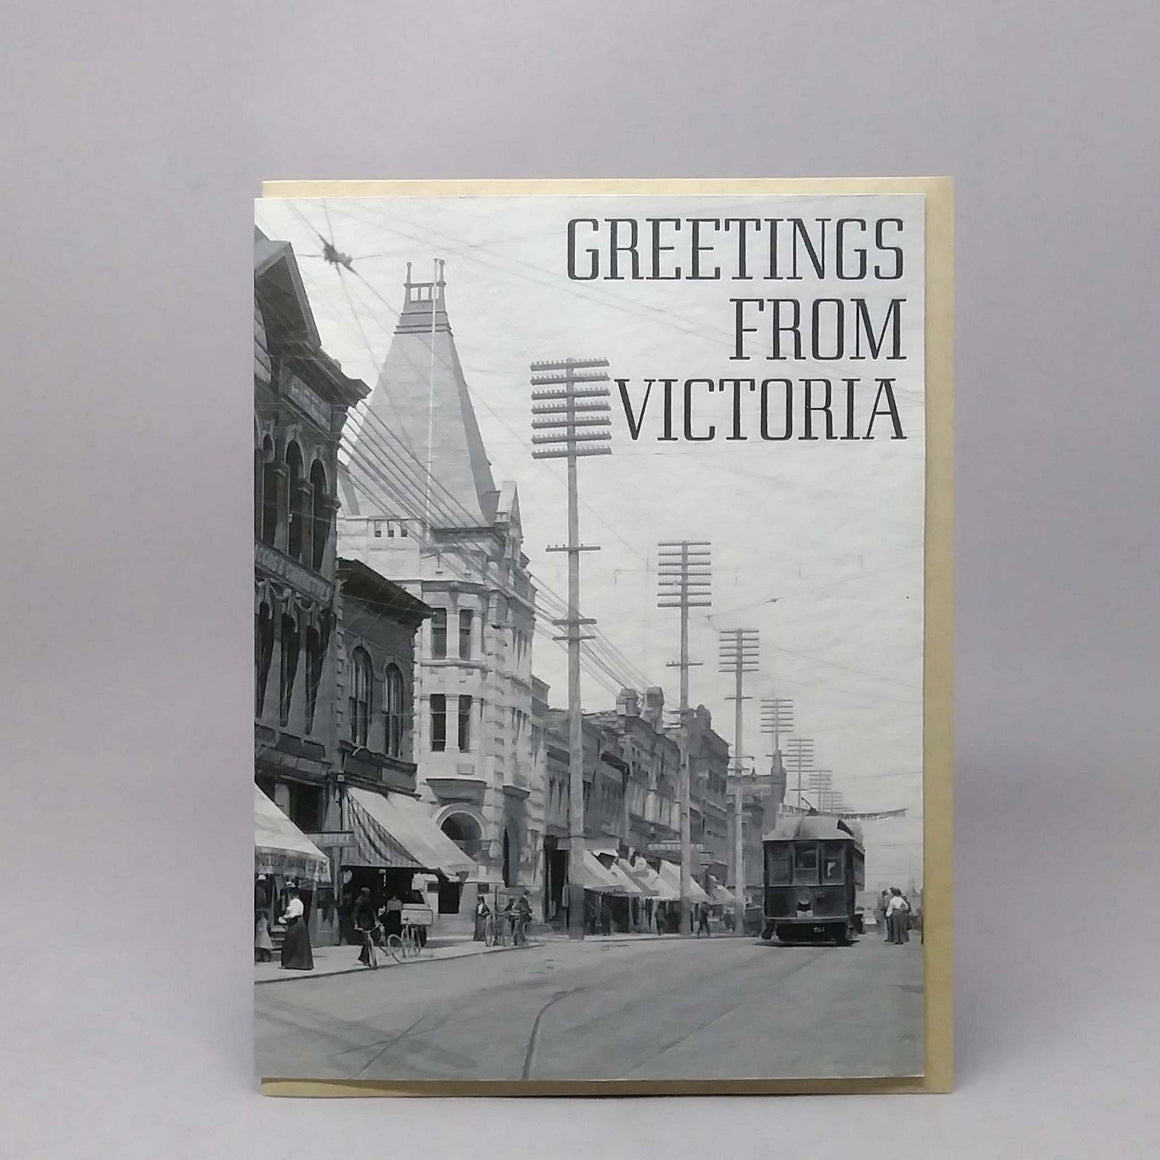 Greetings from Victoria - Vintage